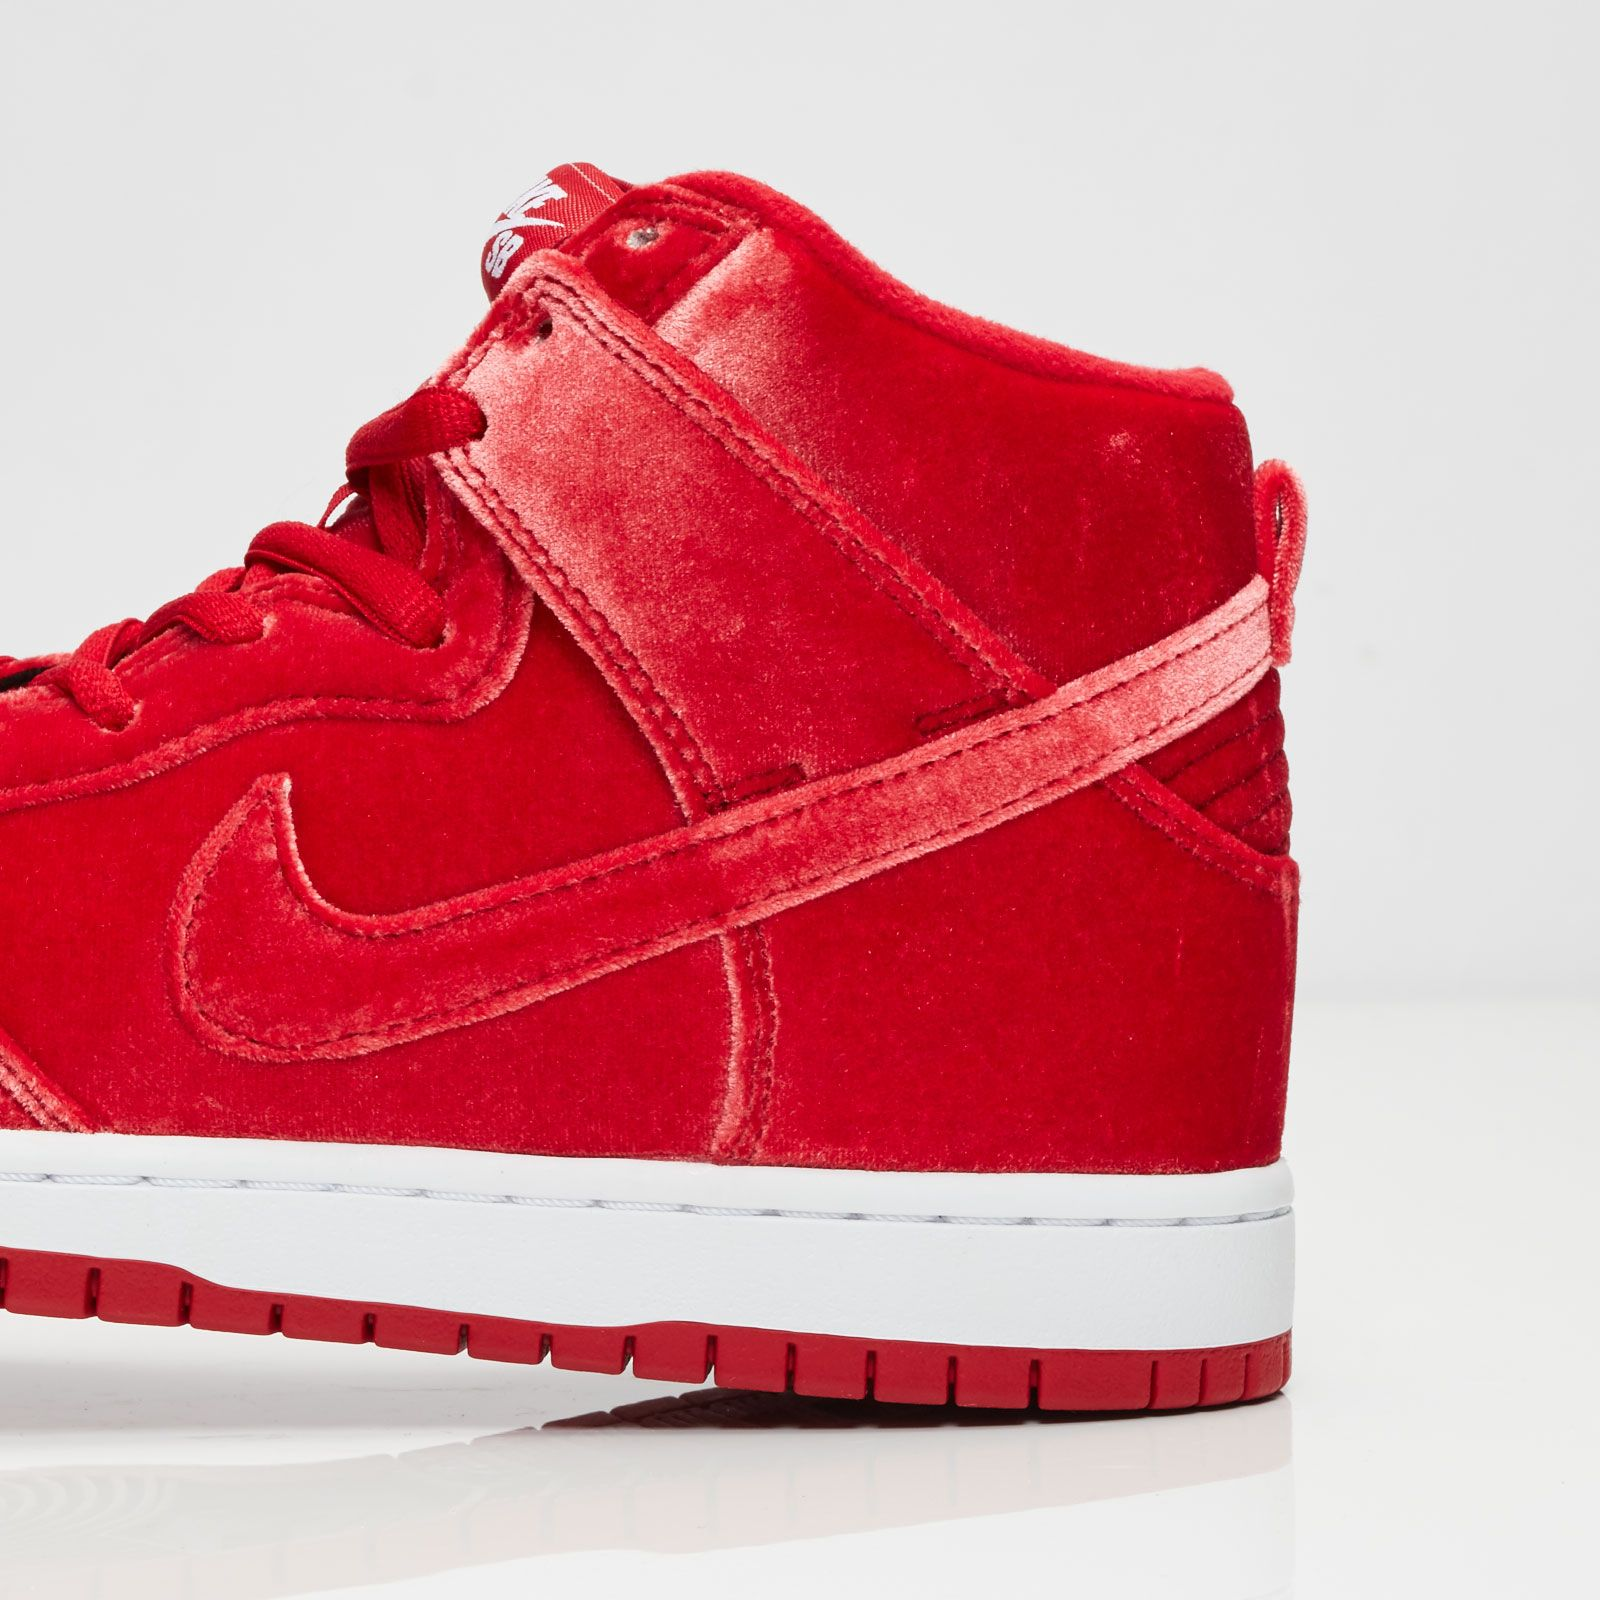 the best attitude 2de80 fe2dc Purchase information, pricing, and detailed photos of Nike ...